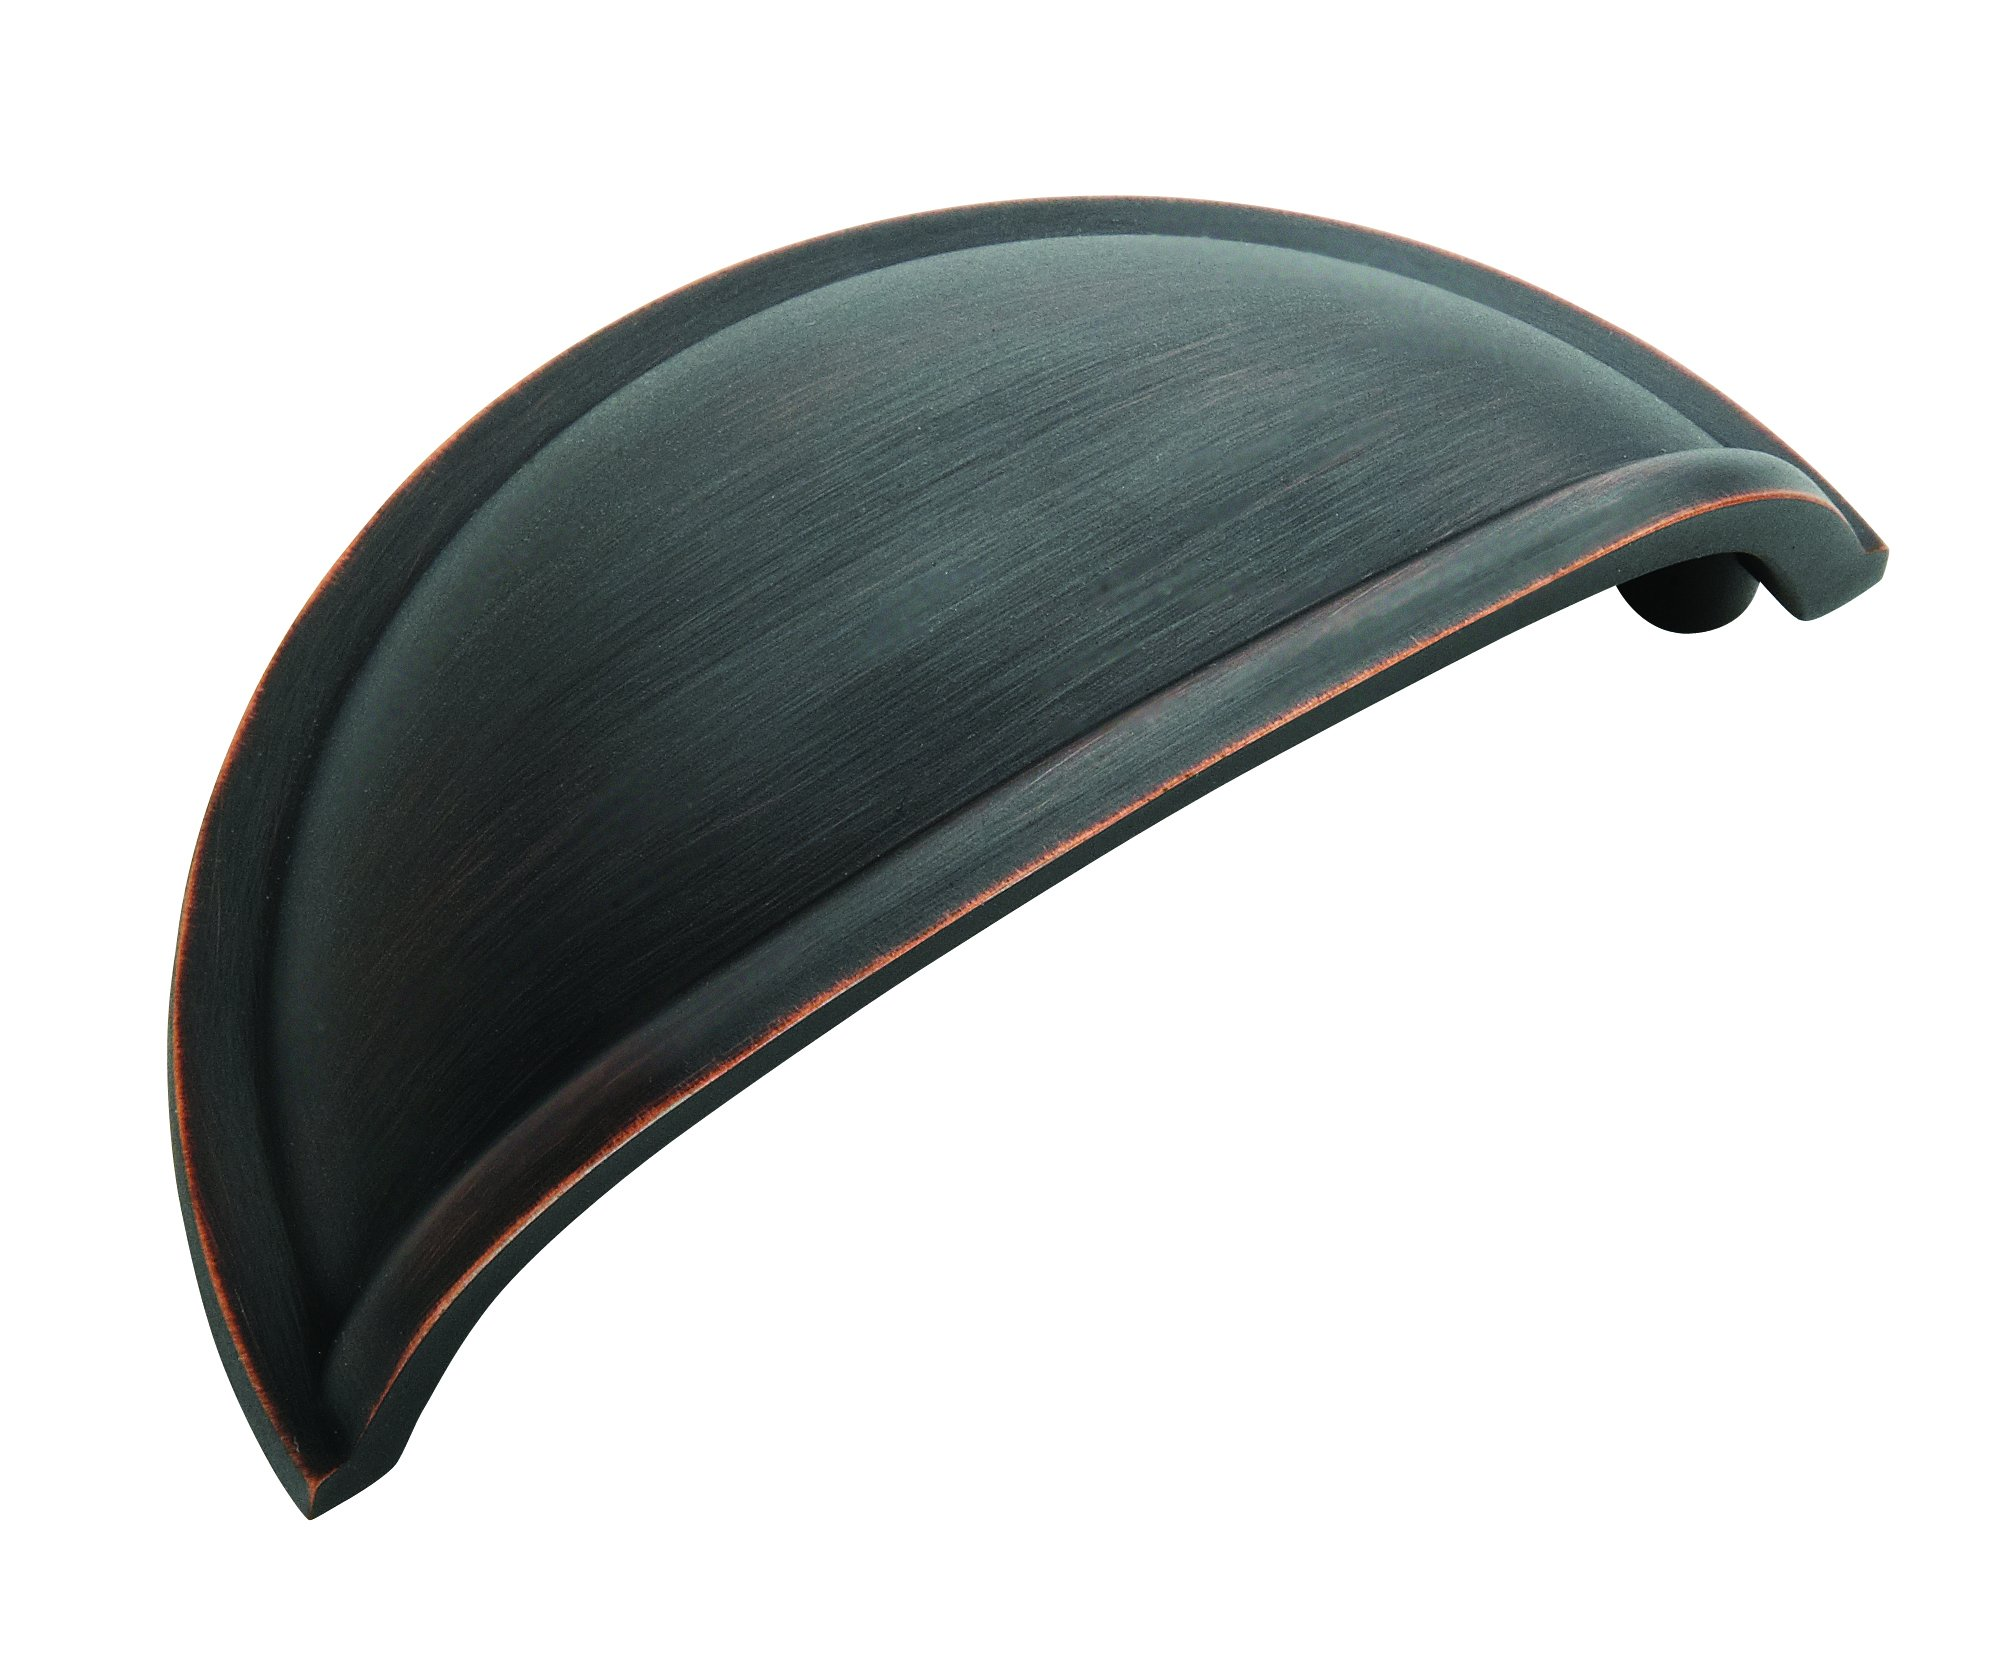 Cup Pulls 3 in (76 mm) Center-to-Center Oil-Rubbed Bronze Cabinet Cup Pull - 5 Pack - 5BX53010ORB